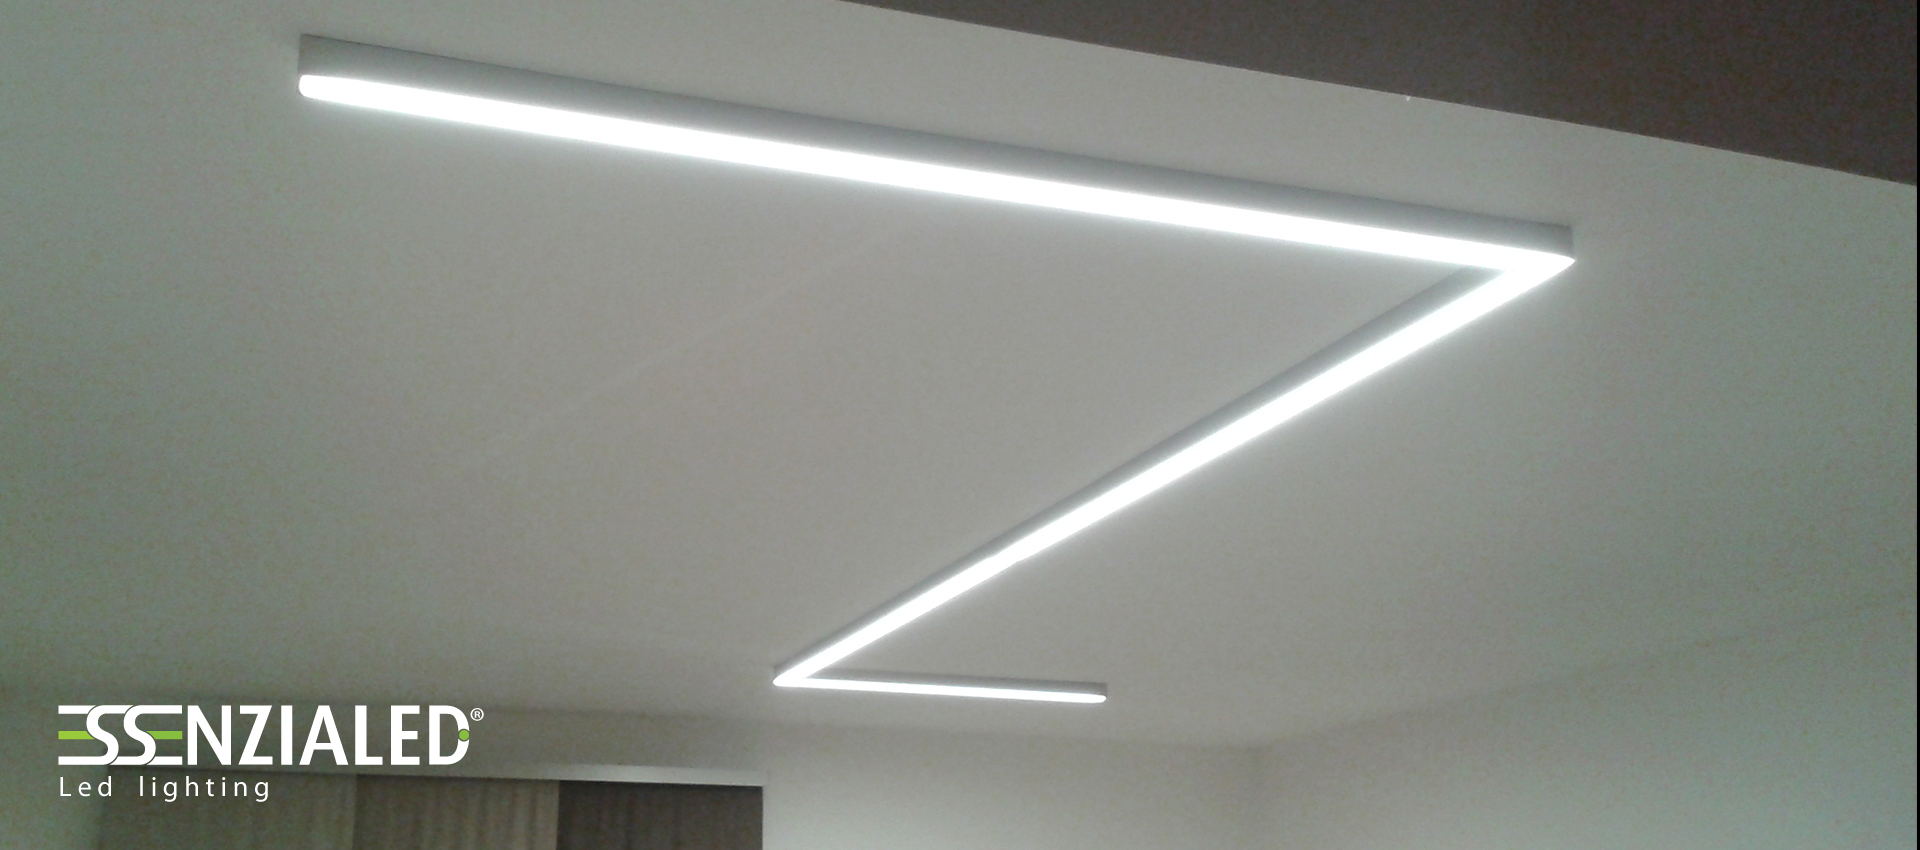 Relativamente luci led soffitto ln94 pineglen for Illuminazione led a soffitto